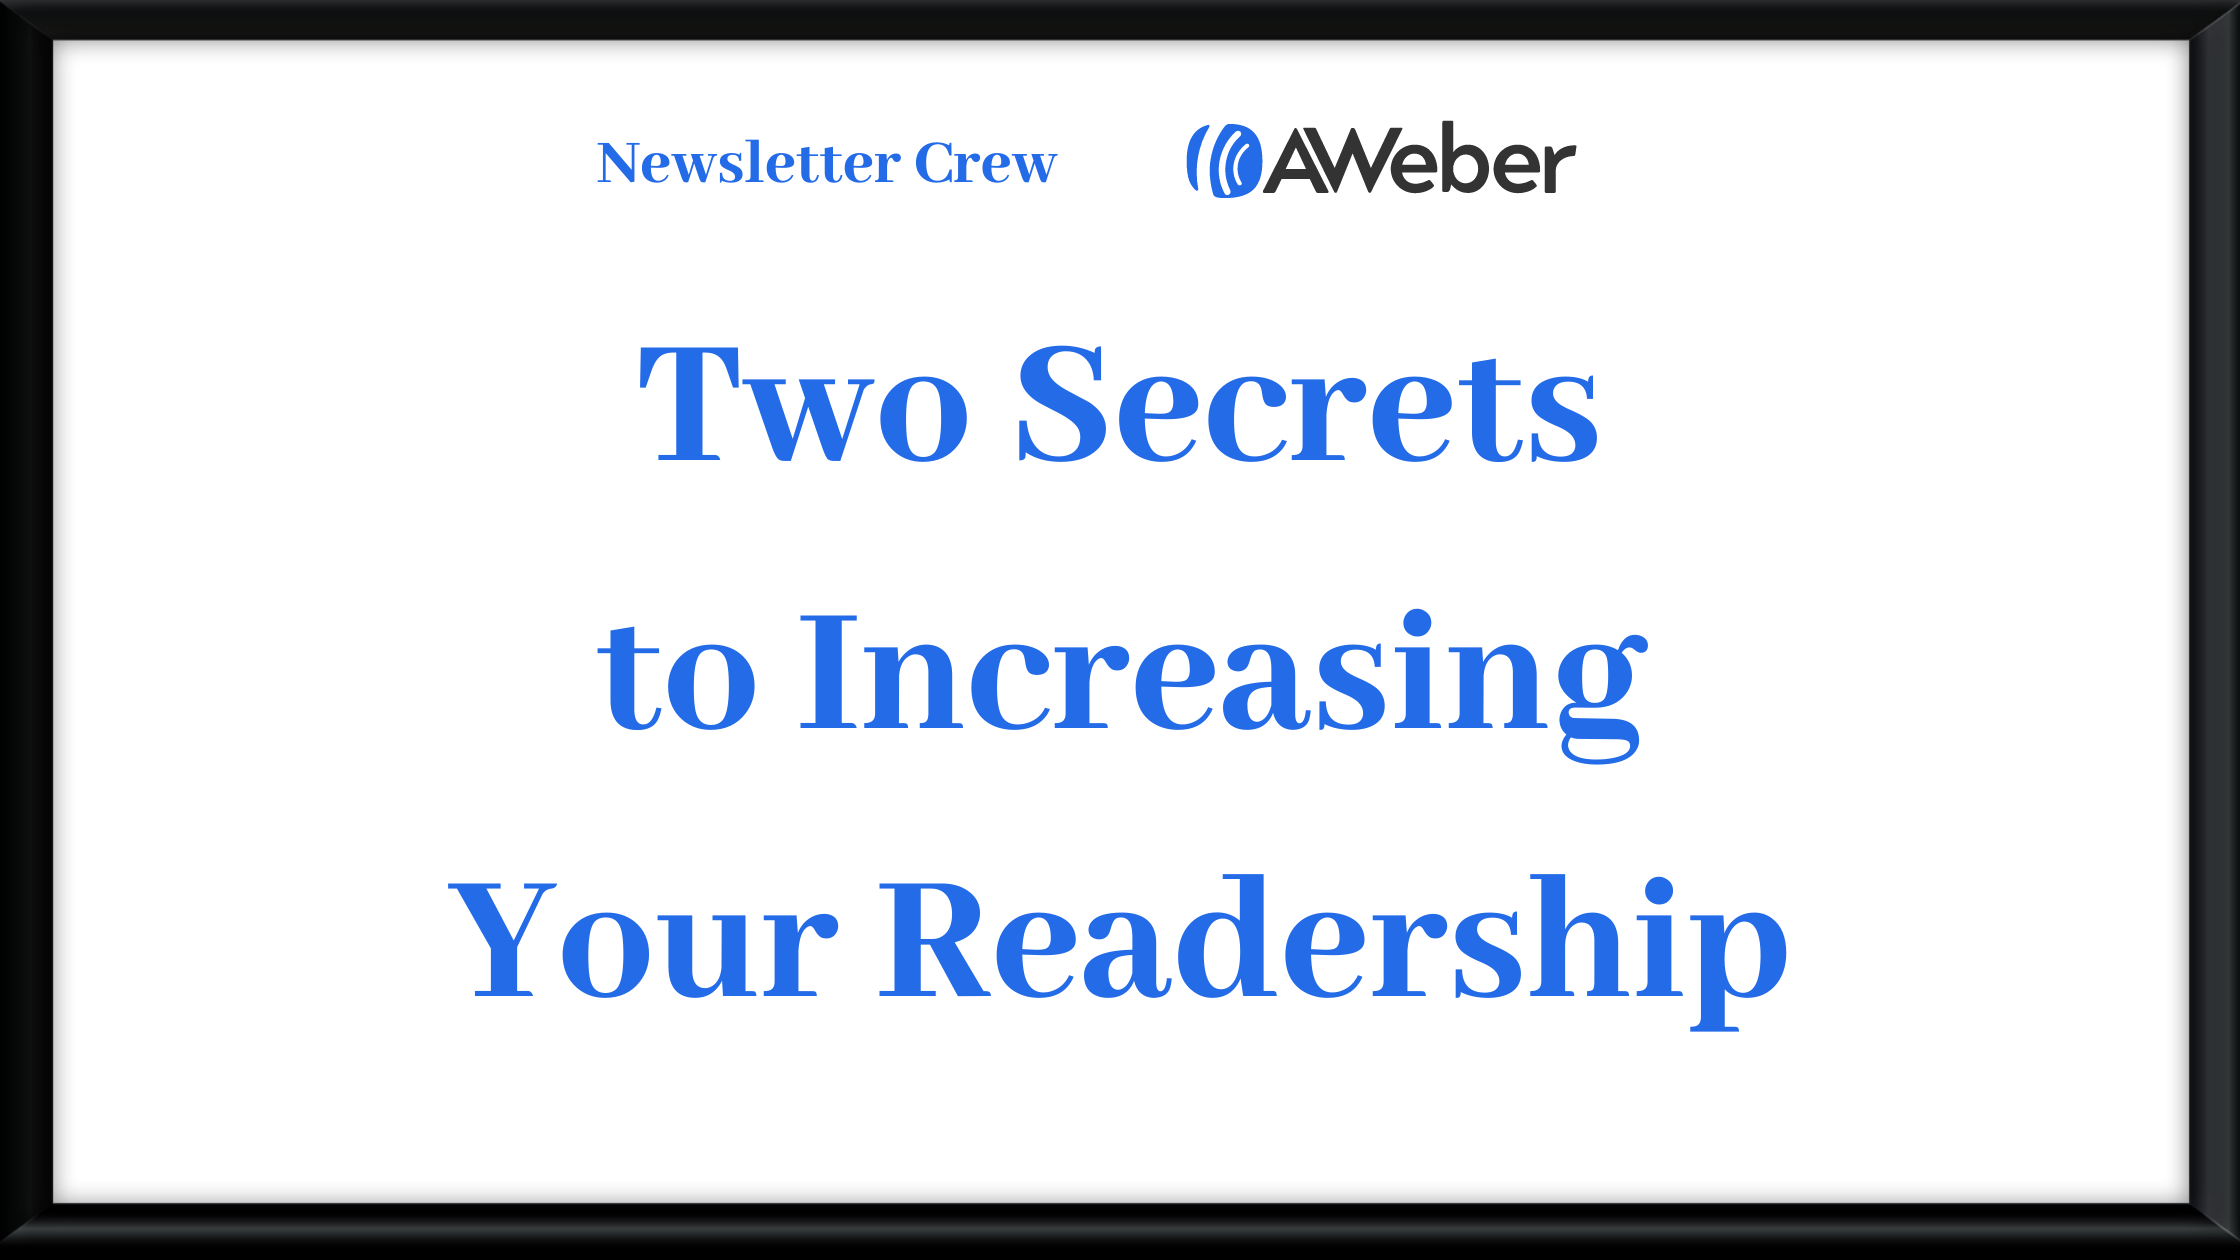 Two Secrets to Increasing Newsletter Readers - that no one is talking about